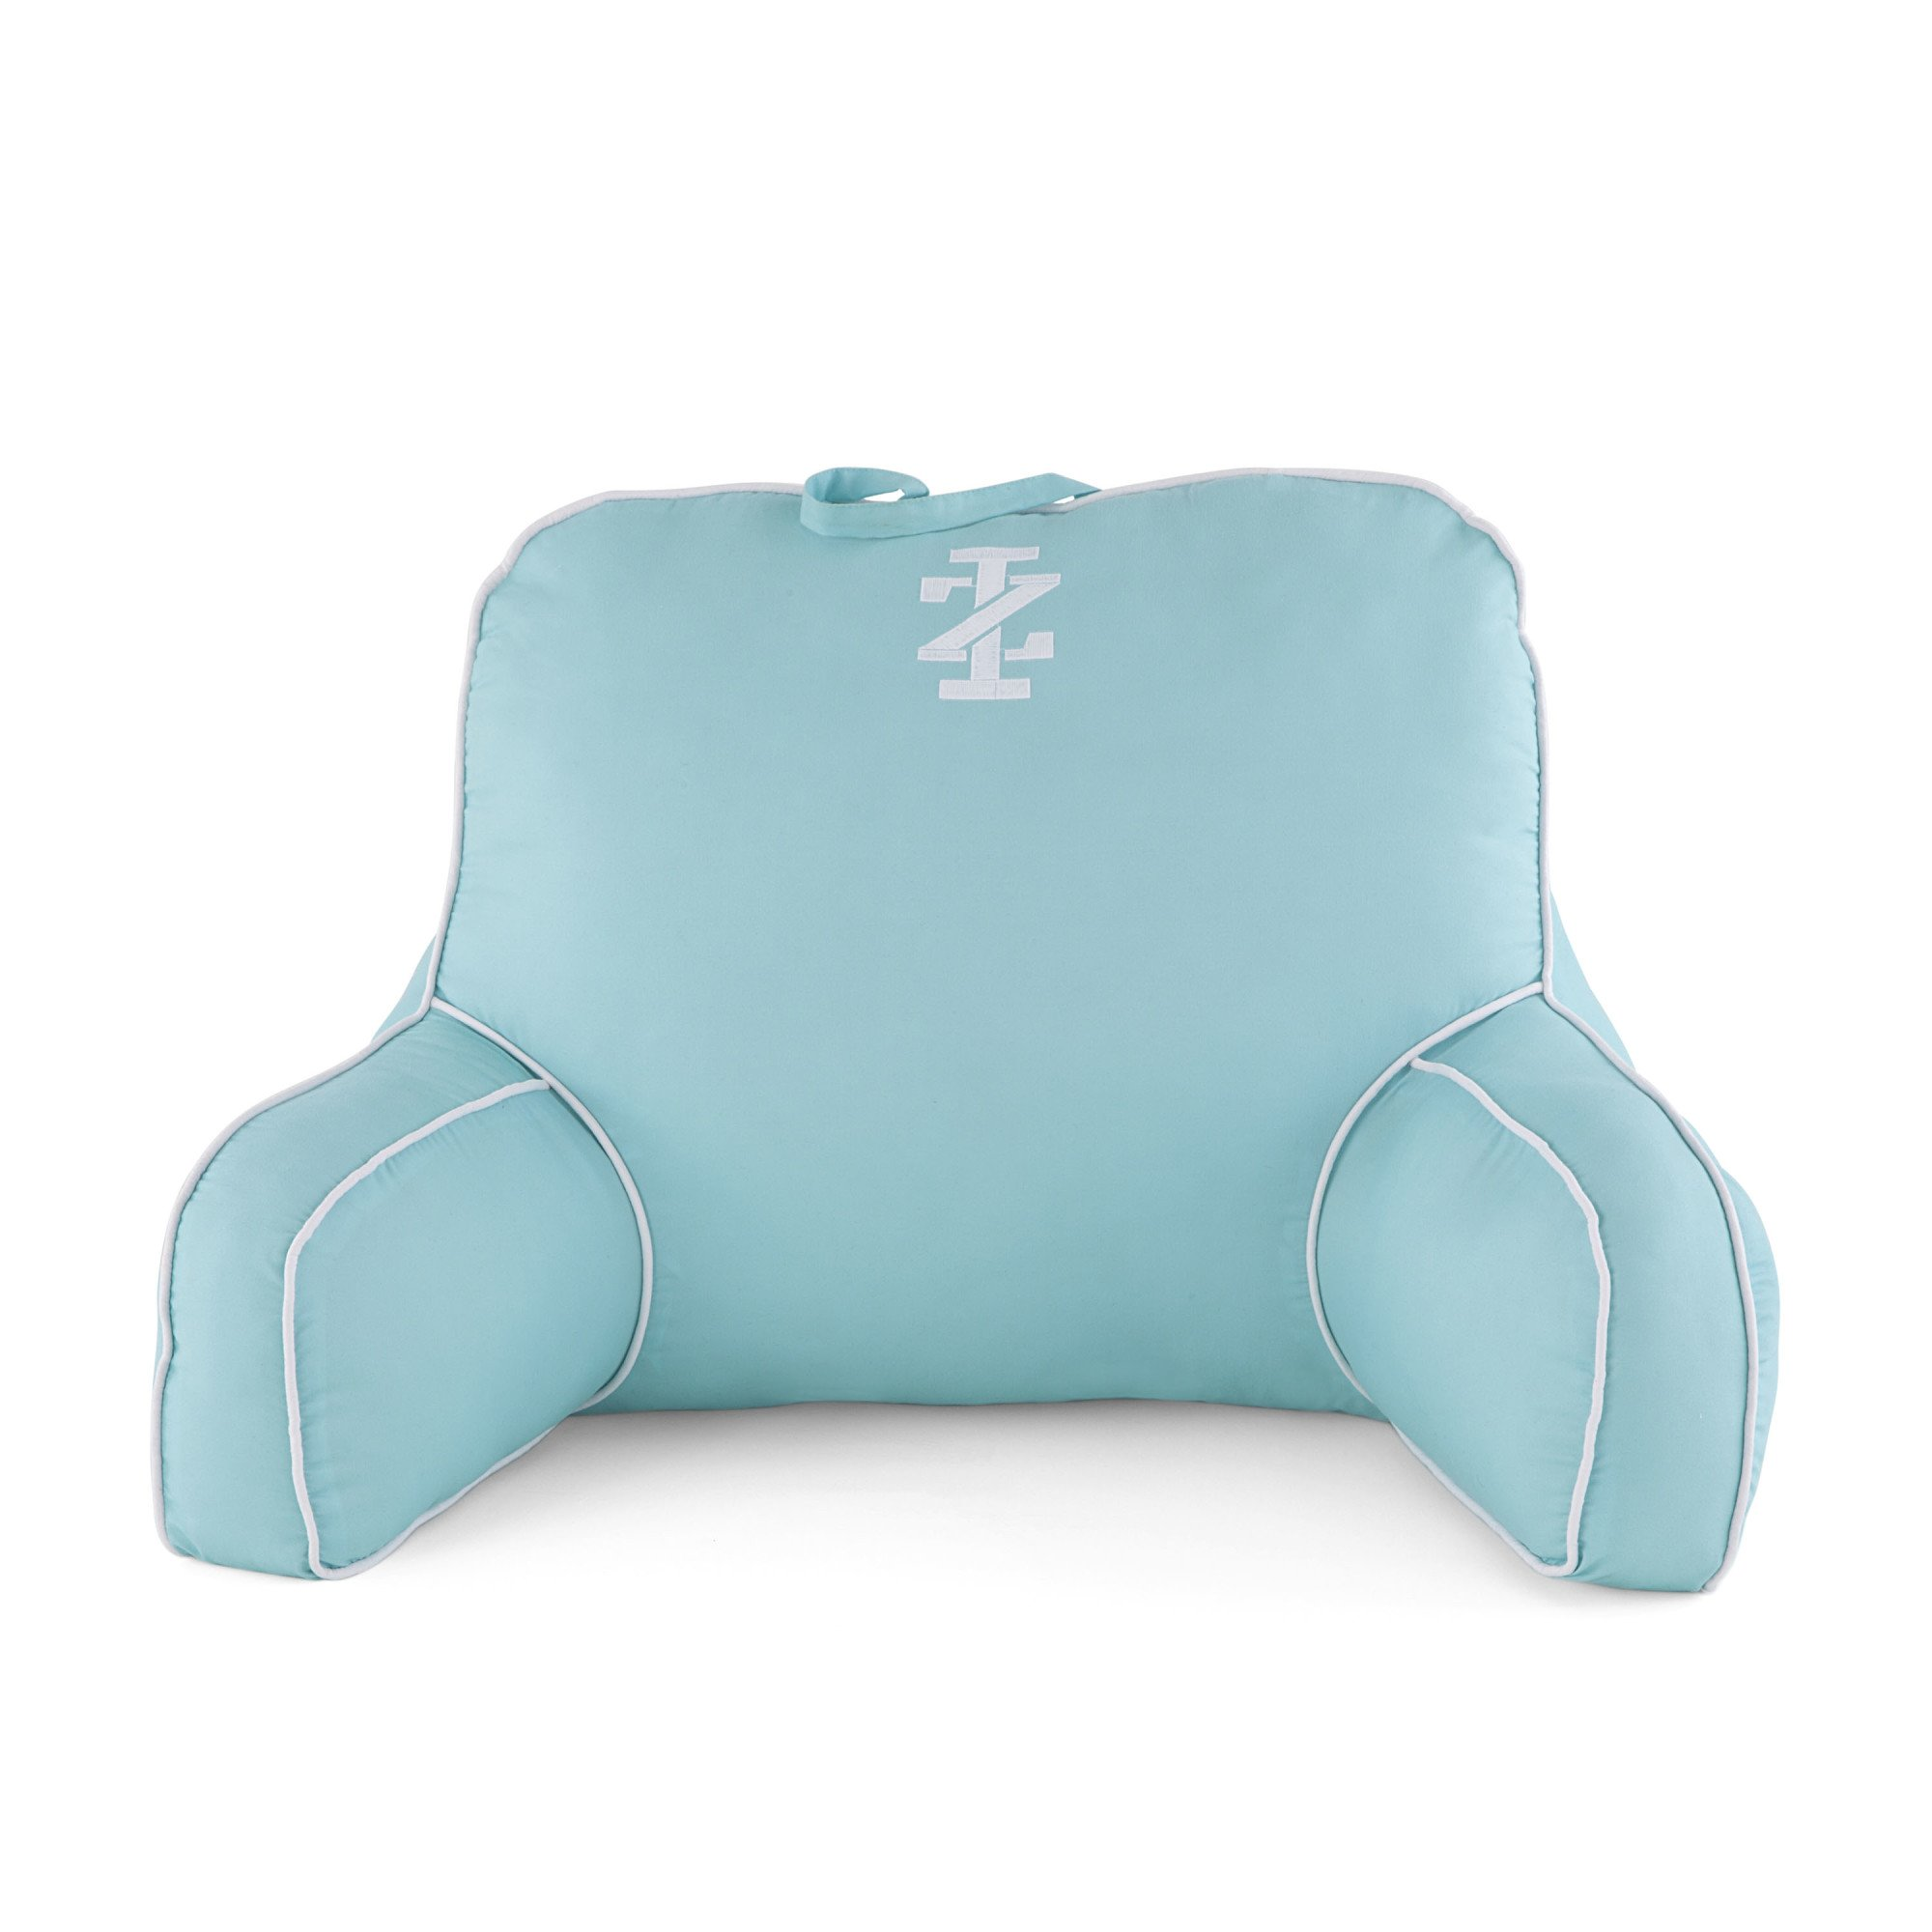 IZOD Backrest Pillow, Cascade